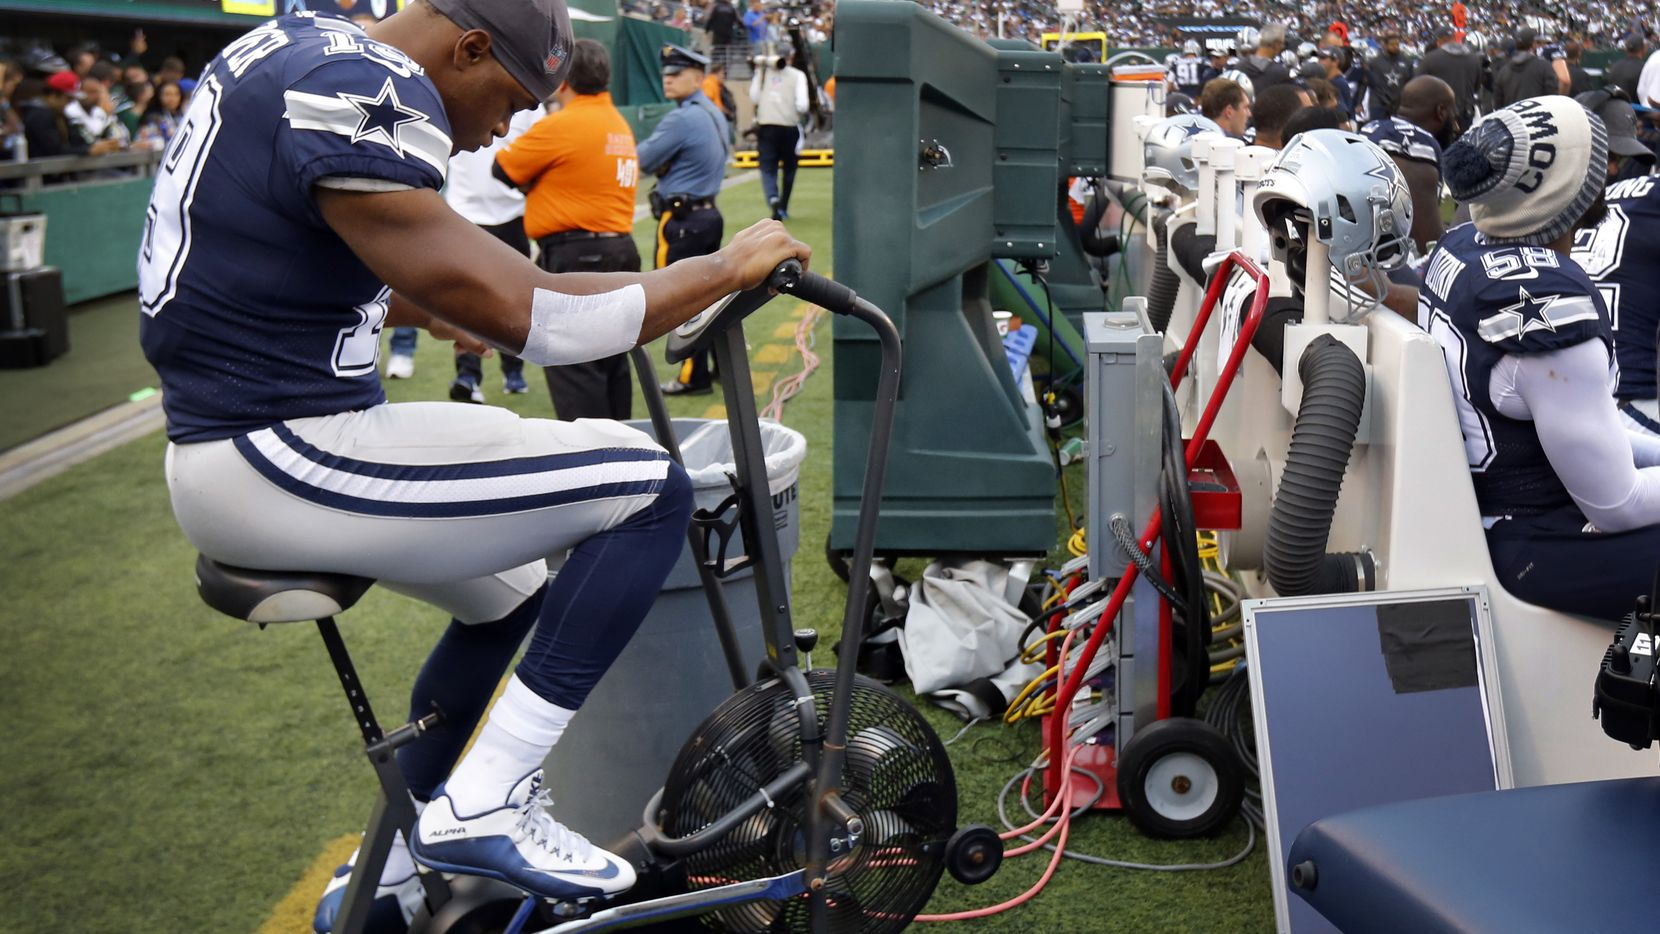 Dallas Cowboys wide receiver Amari Cooper (19) peddles on the bike after sustaining an injury during the first quarter against the New York Jets at MetLife Stadium in East Rutherford, New Jersey, Sunday, October 13, 2019.